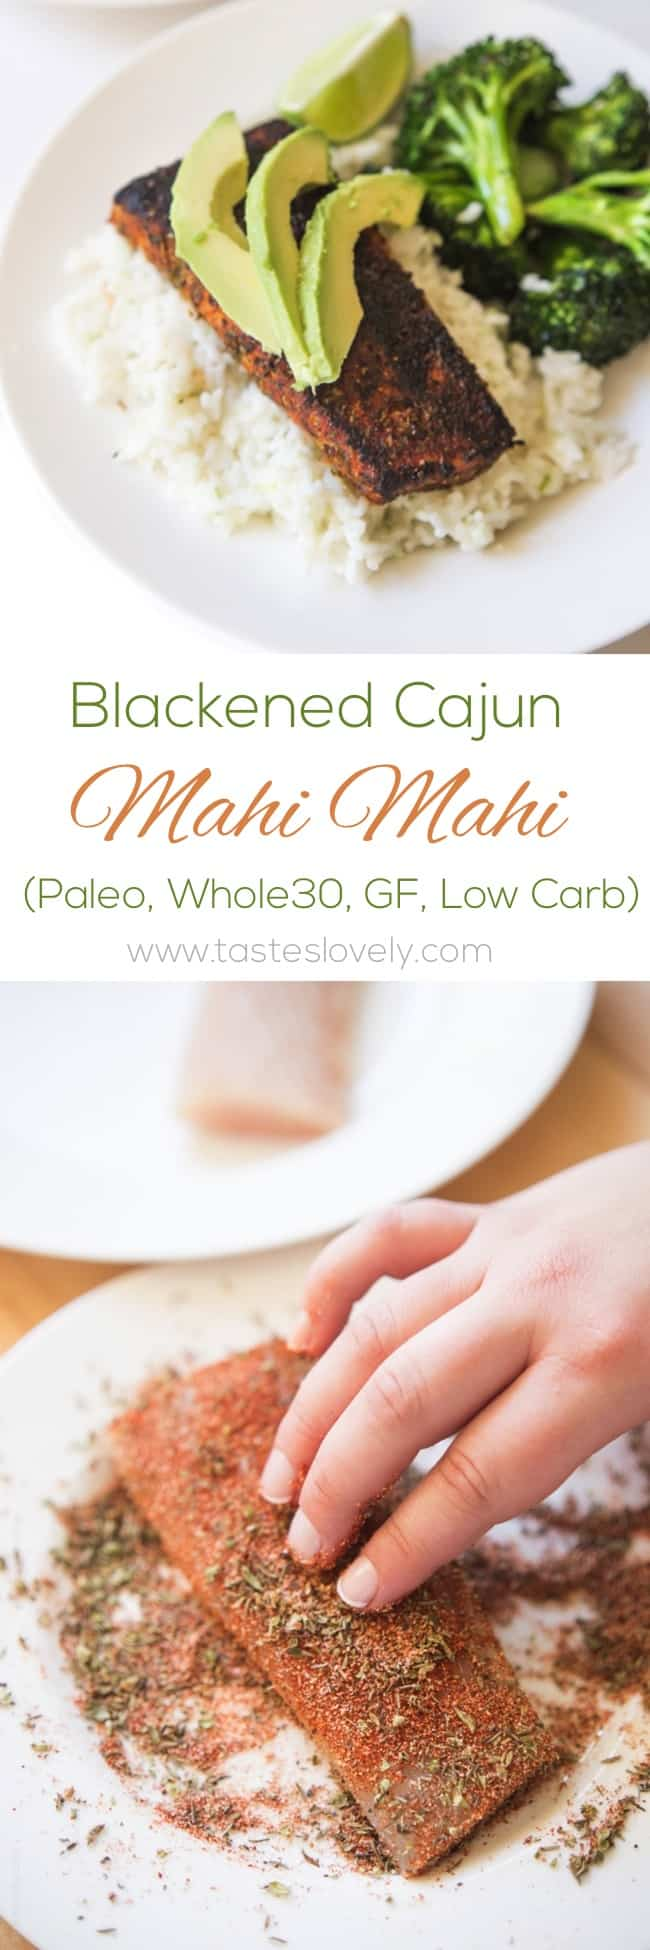 Paleo Blackened Cajun Mahi Mahi #glutenfree #whole30 #lowcarb